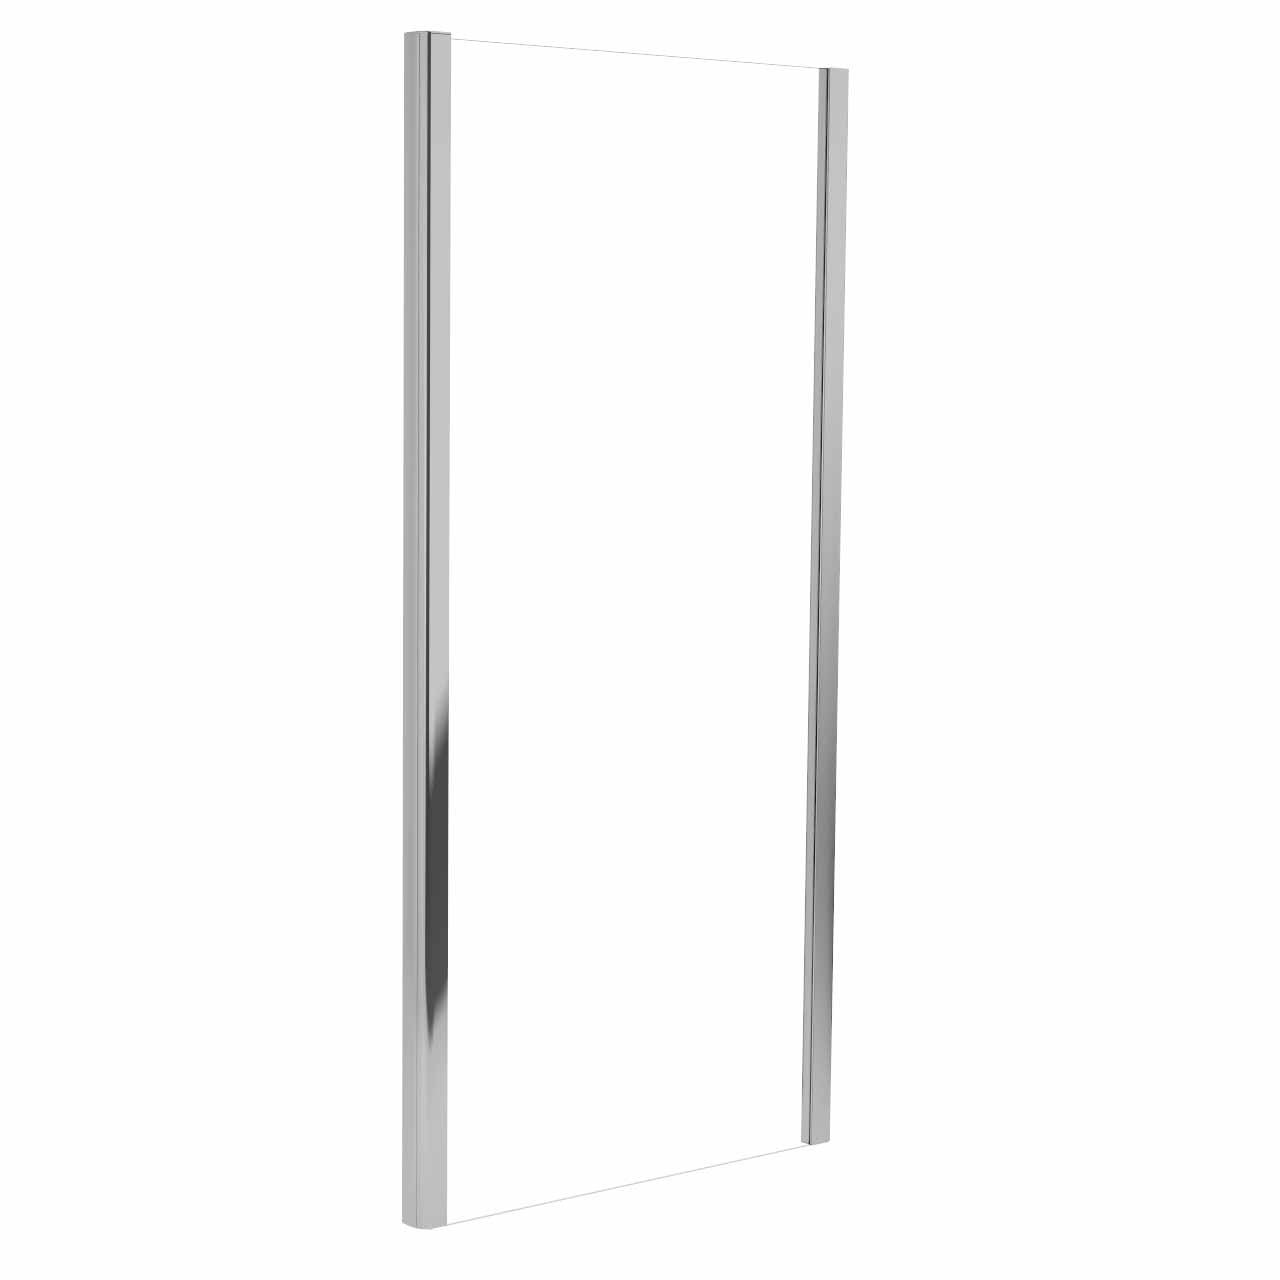 Series 8 Plus 1400 x 900 Sliding Door Enclosure